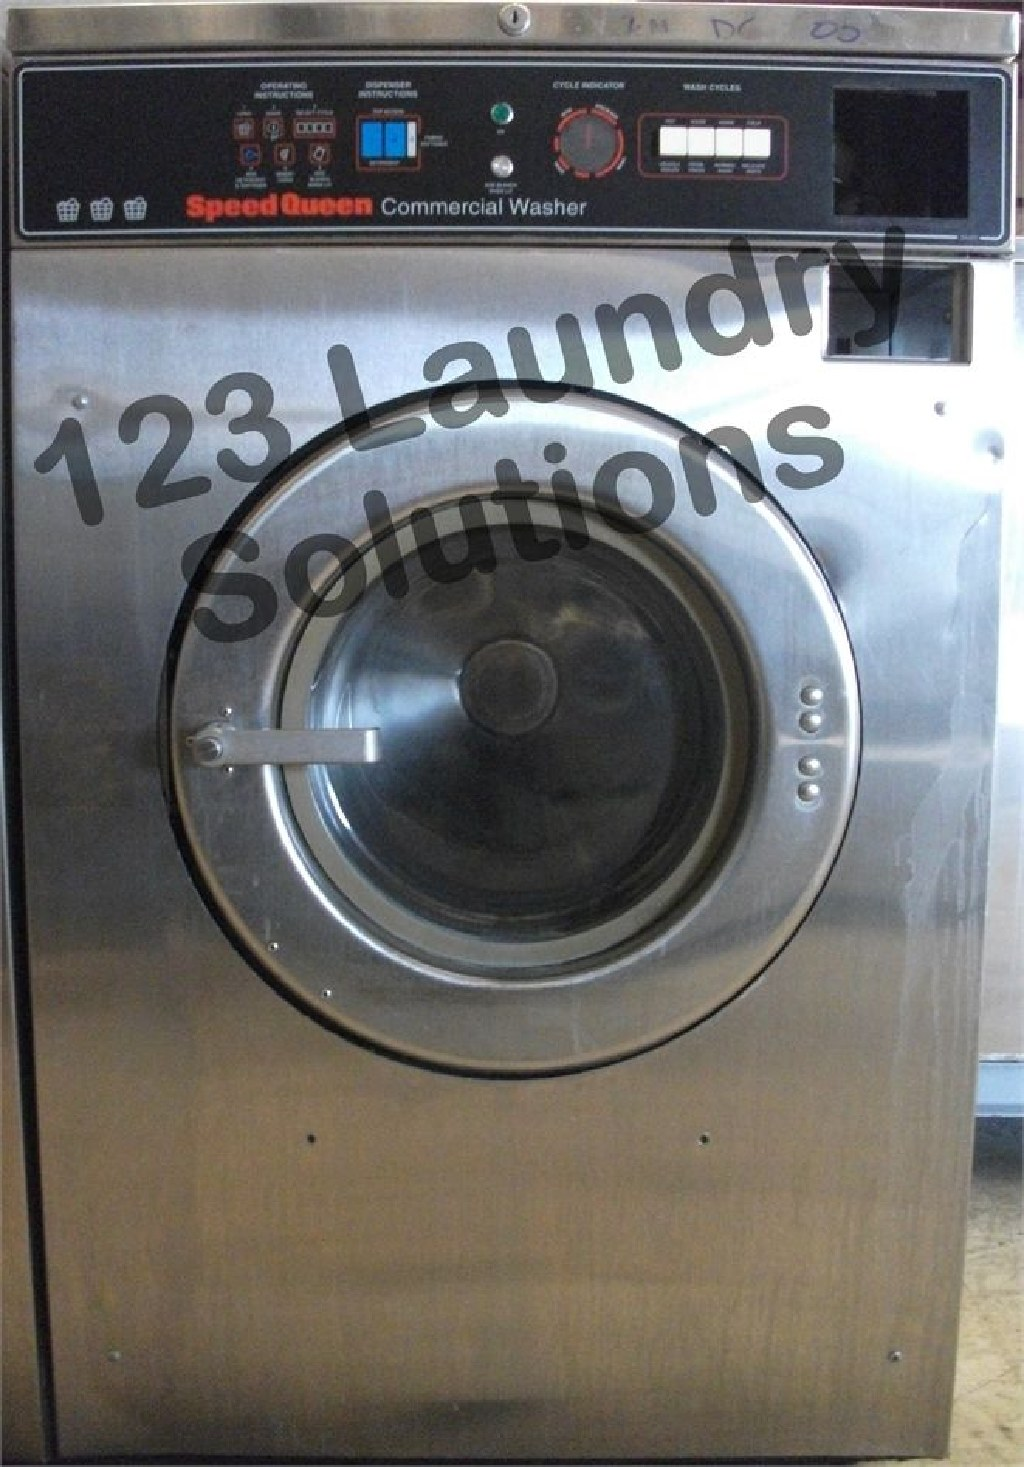 Coin Laundry Speed Queen Front Load Washer 208-240v Stainless Steel SC35MD2YU40001 Used